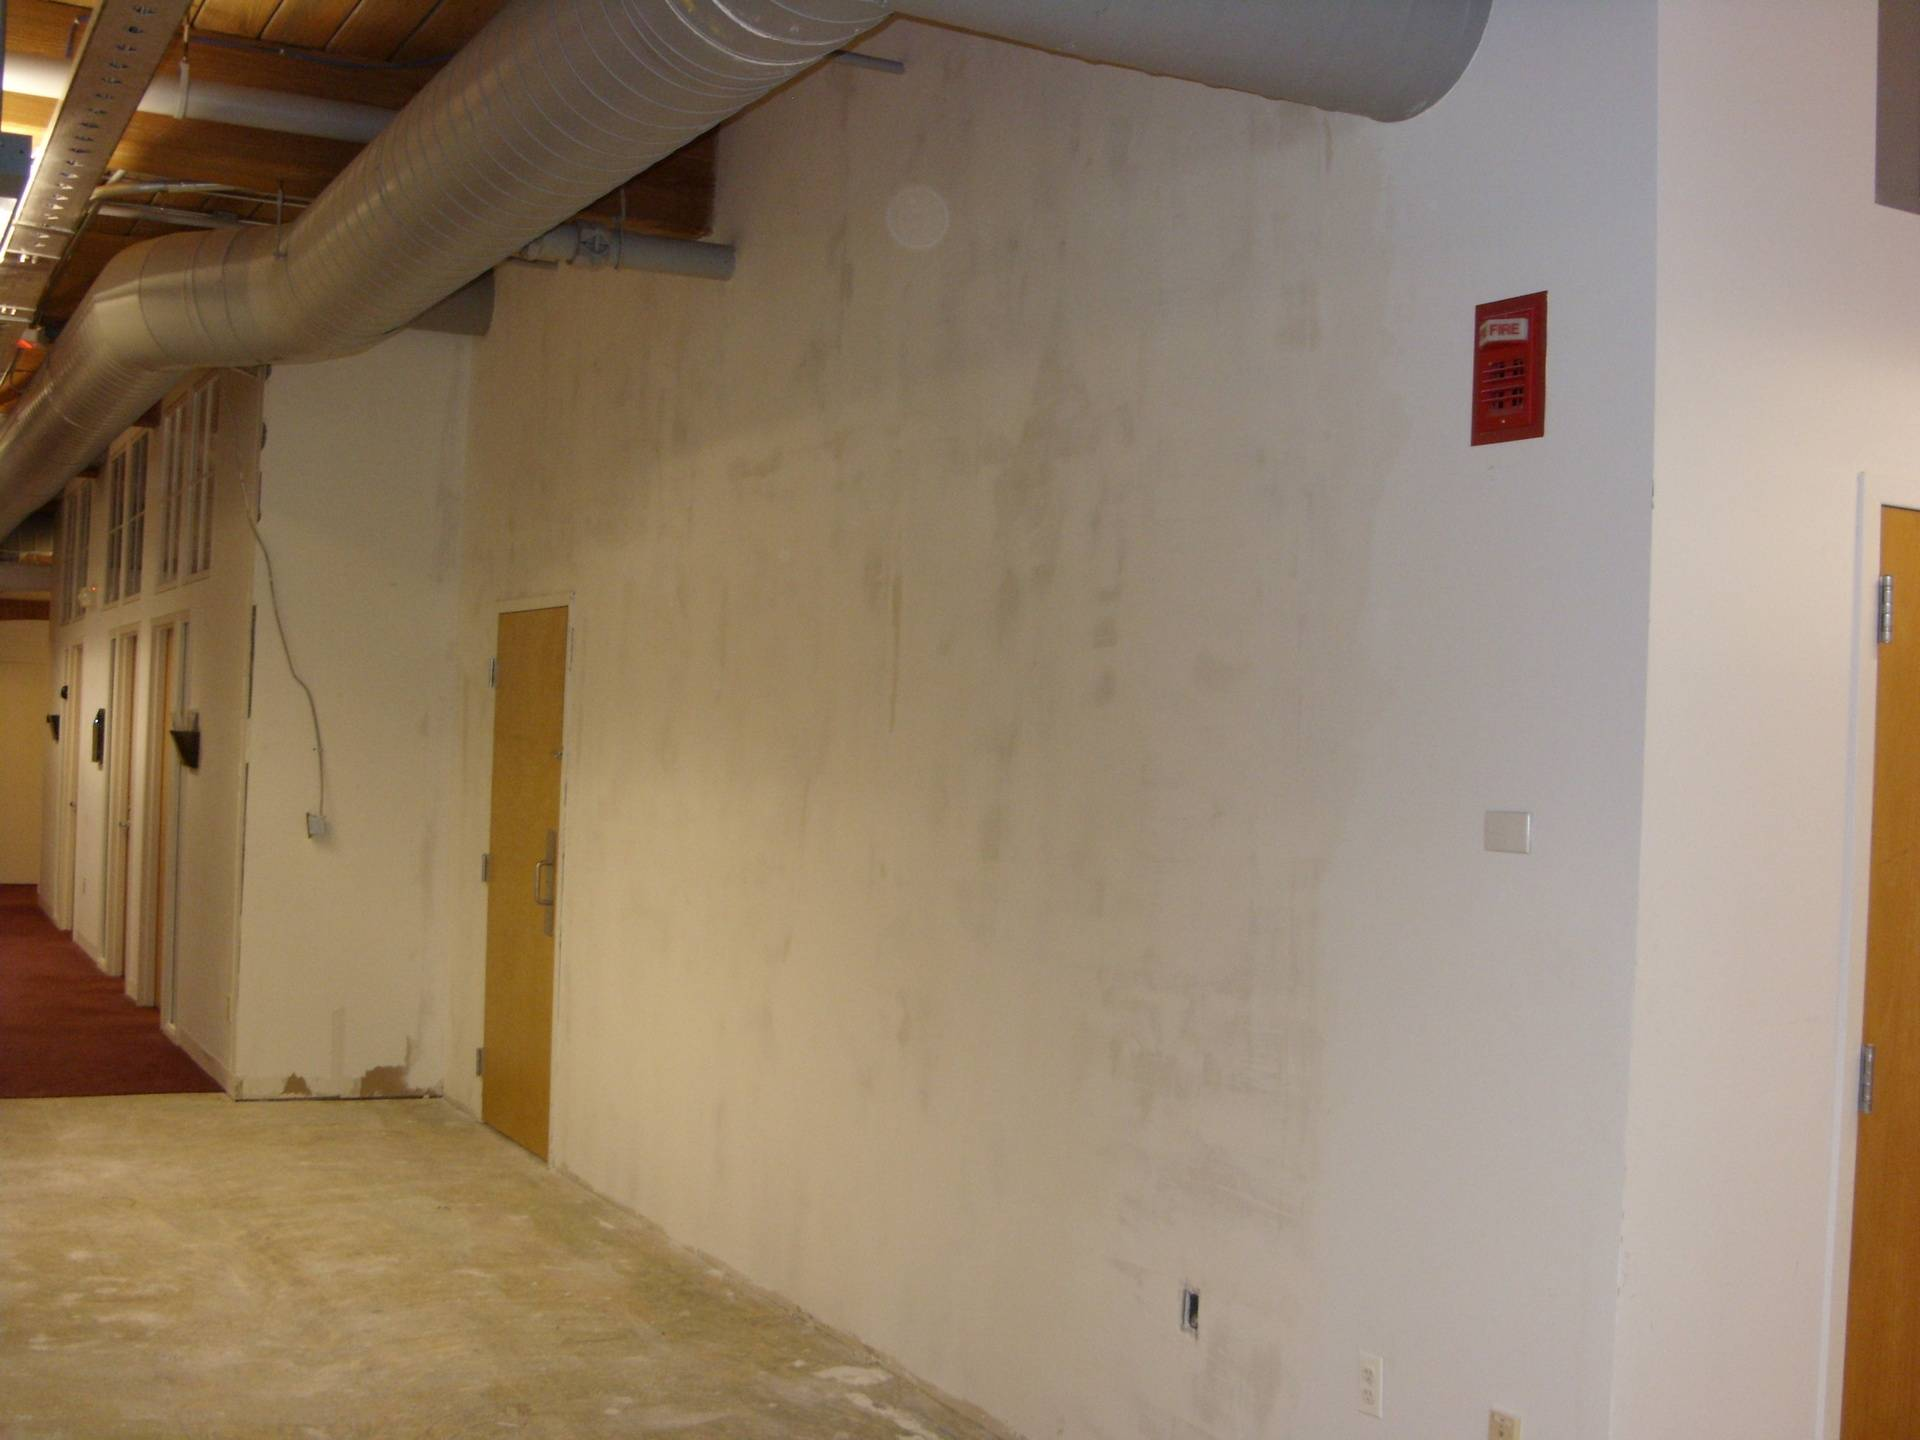 After Image 3: Opened up Hallway with Storage Room to the right